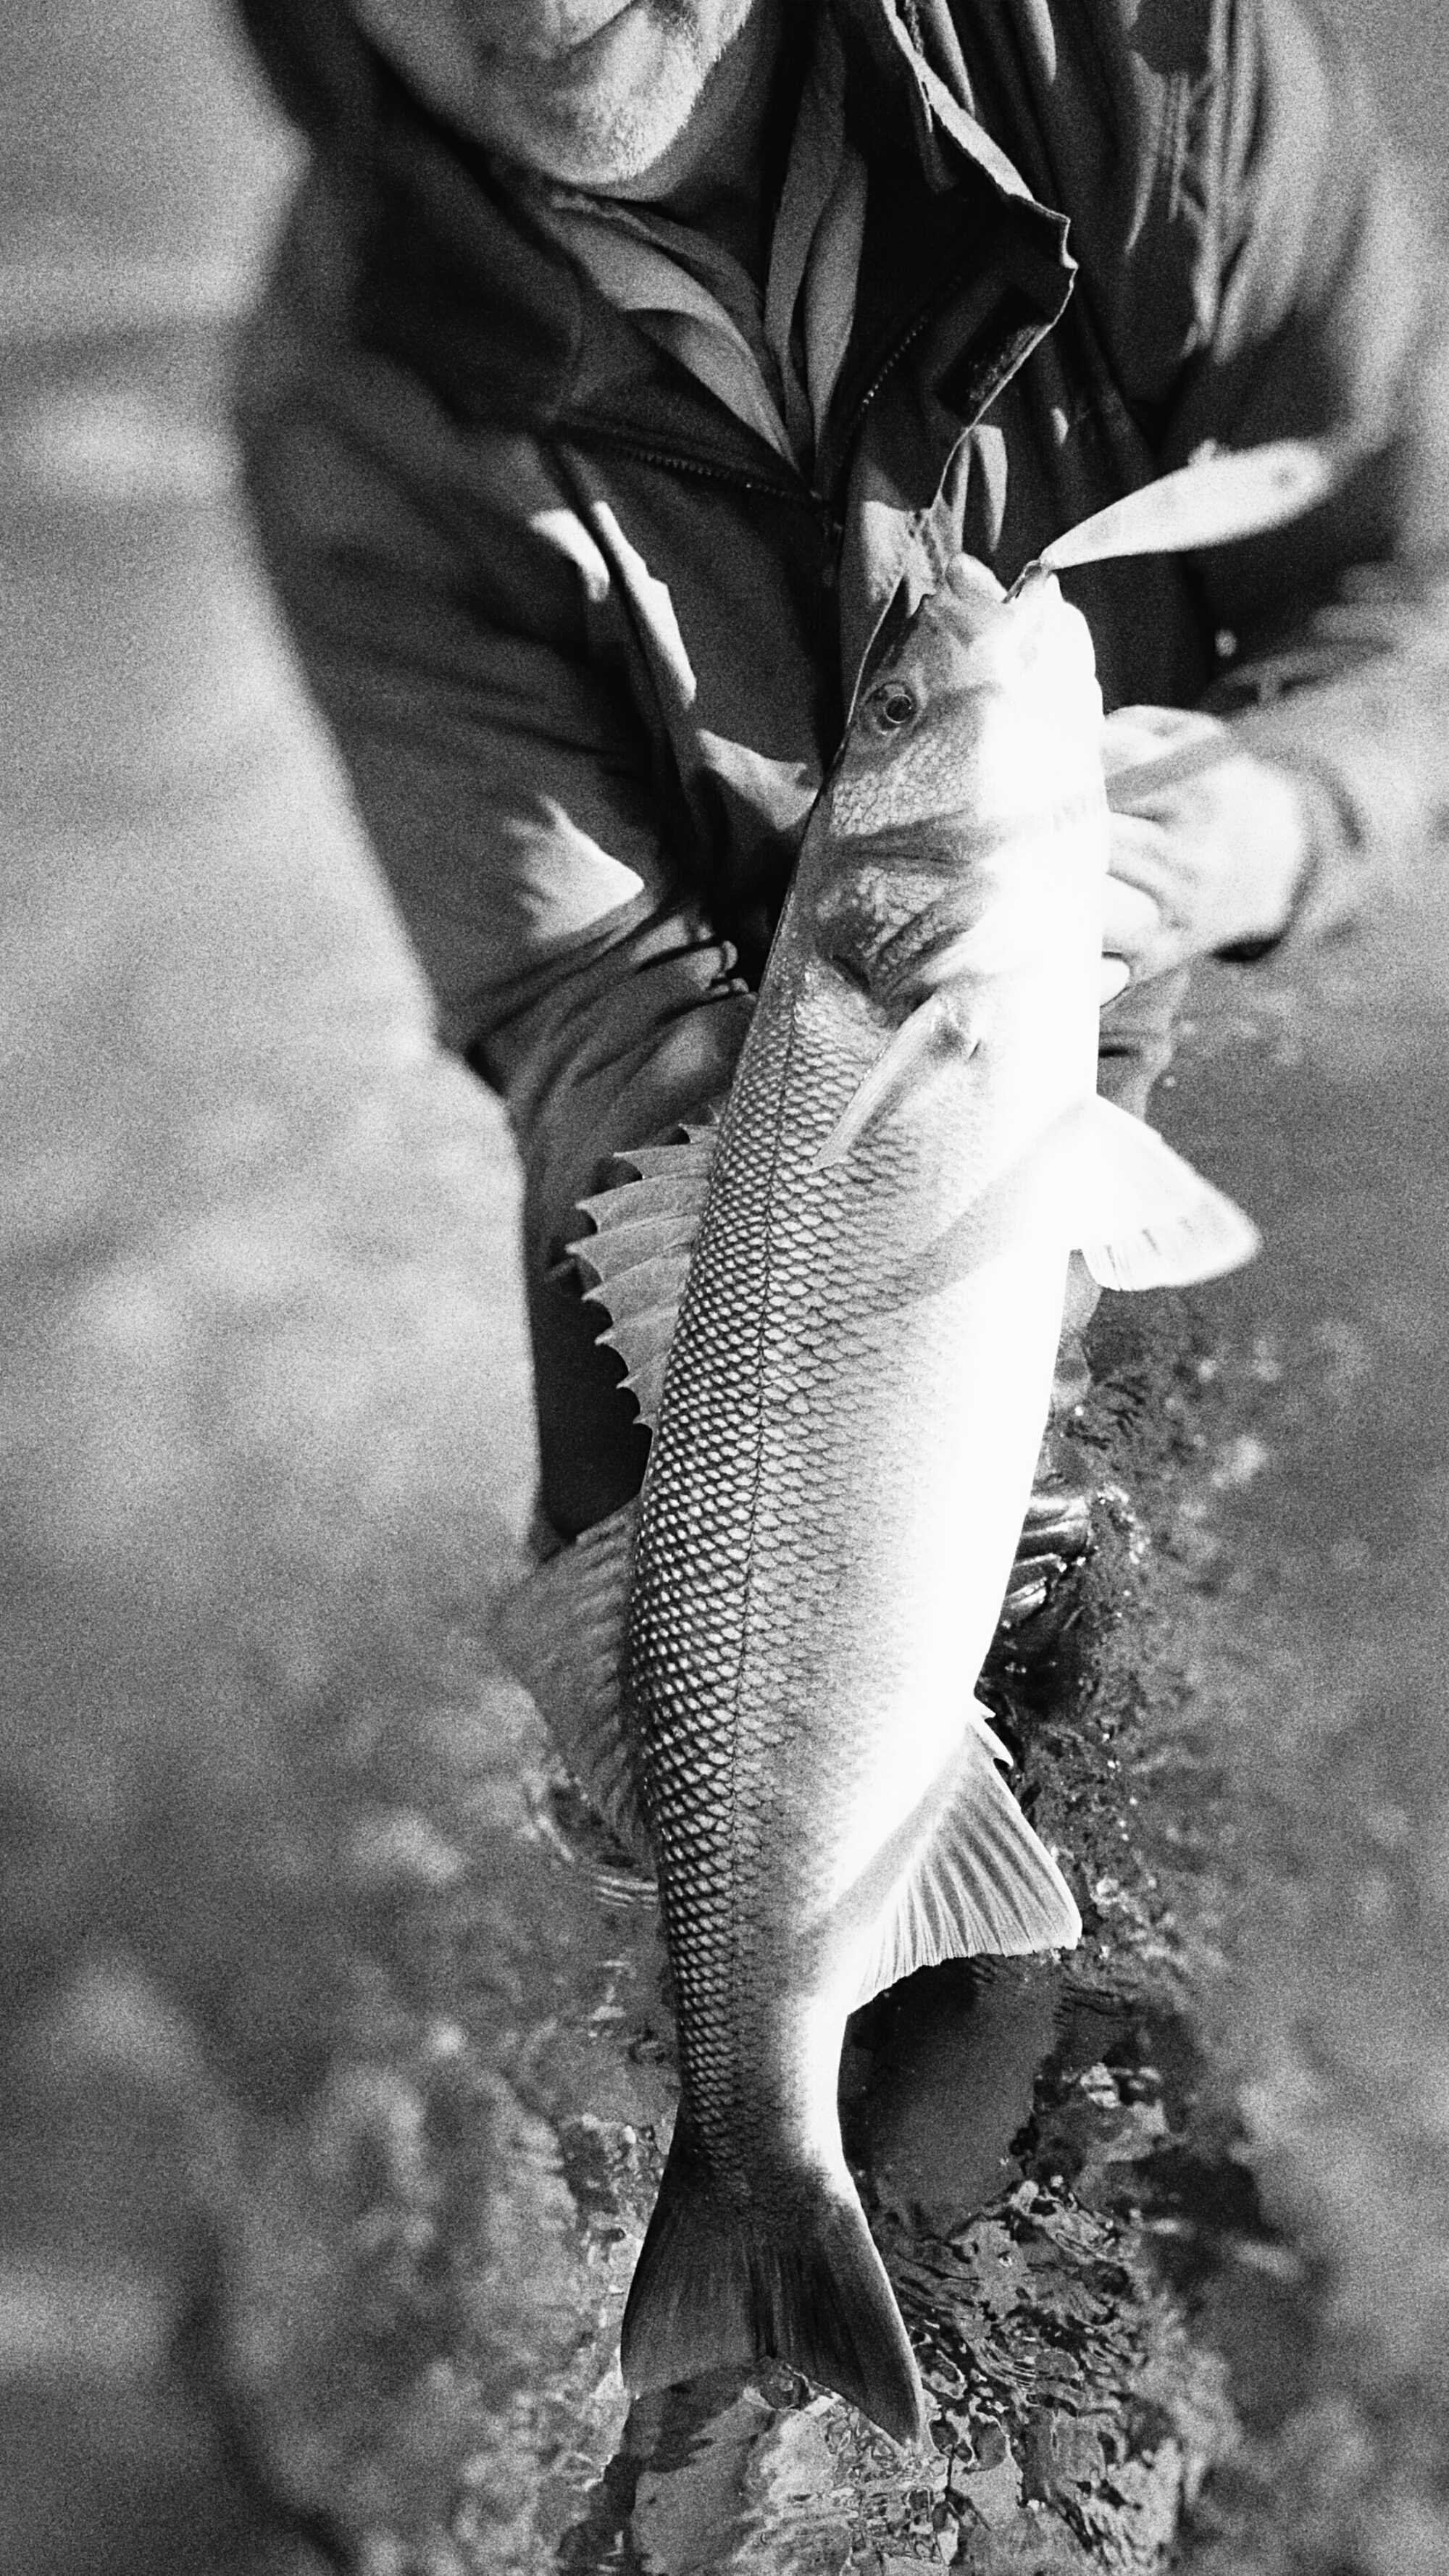 bass fishing in Wexford